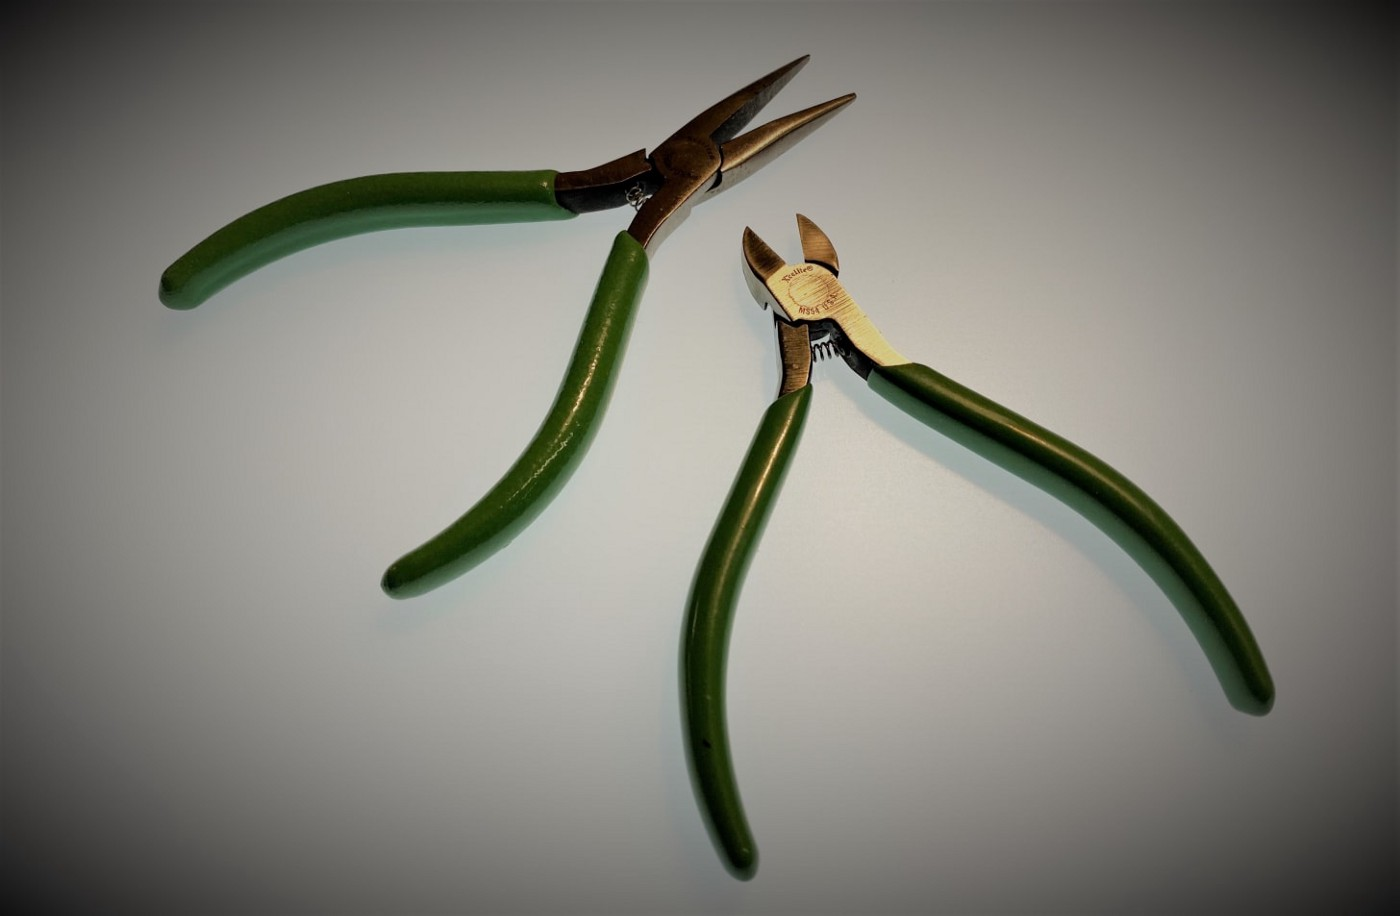 A small pair of green-handled needle-nose pliers and a pair of matching flush wire cutters, on a white background.